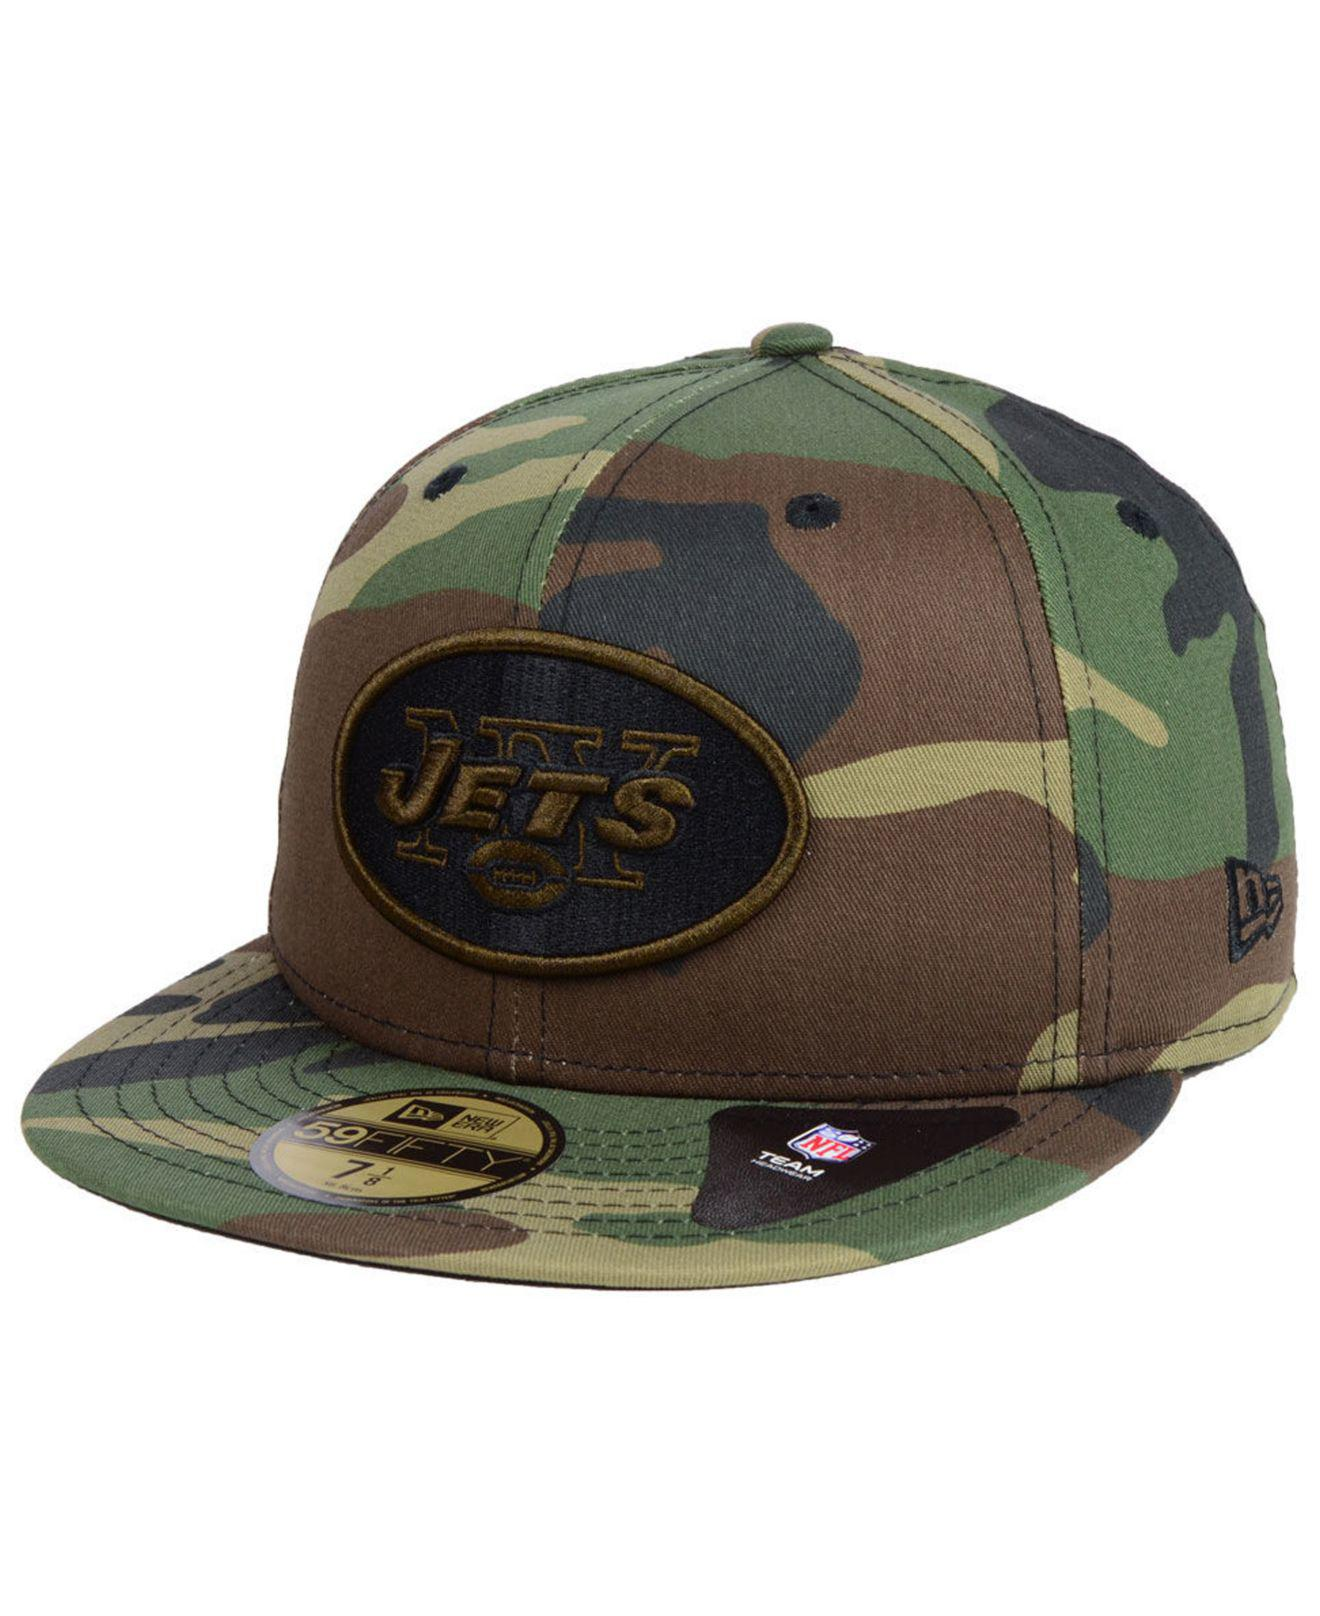 6d3a053fa6d1d Lyst - KTZ New York Jets Woodland Prism Pack 59fifty-fitted Cap in ...